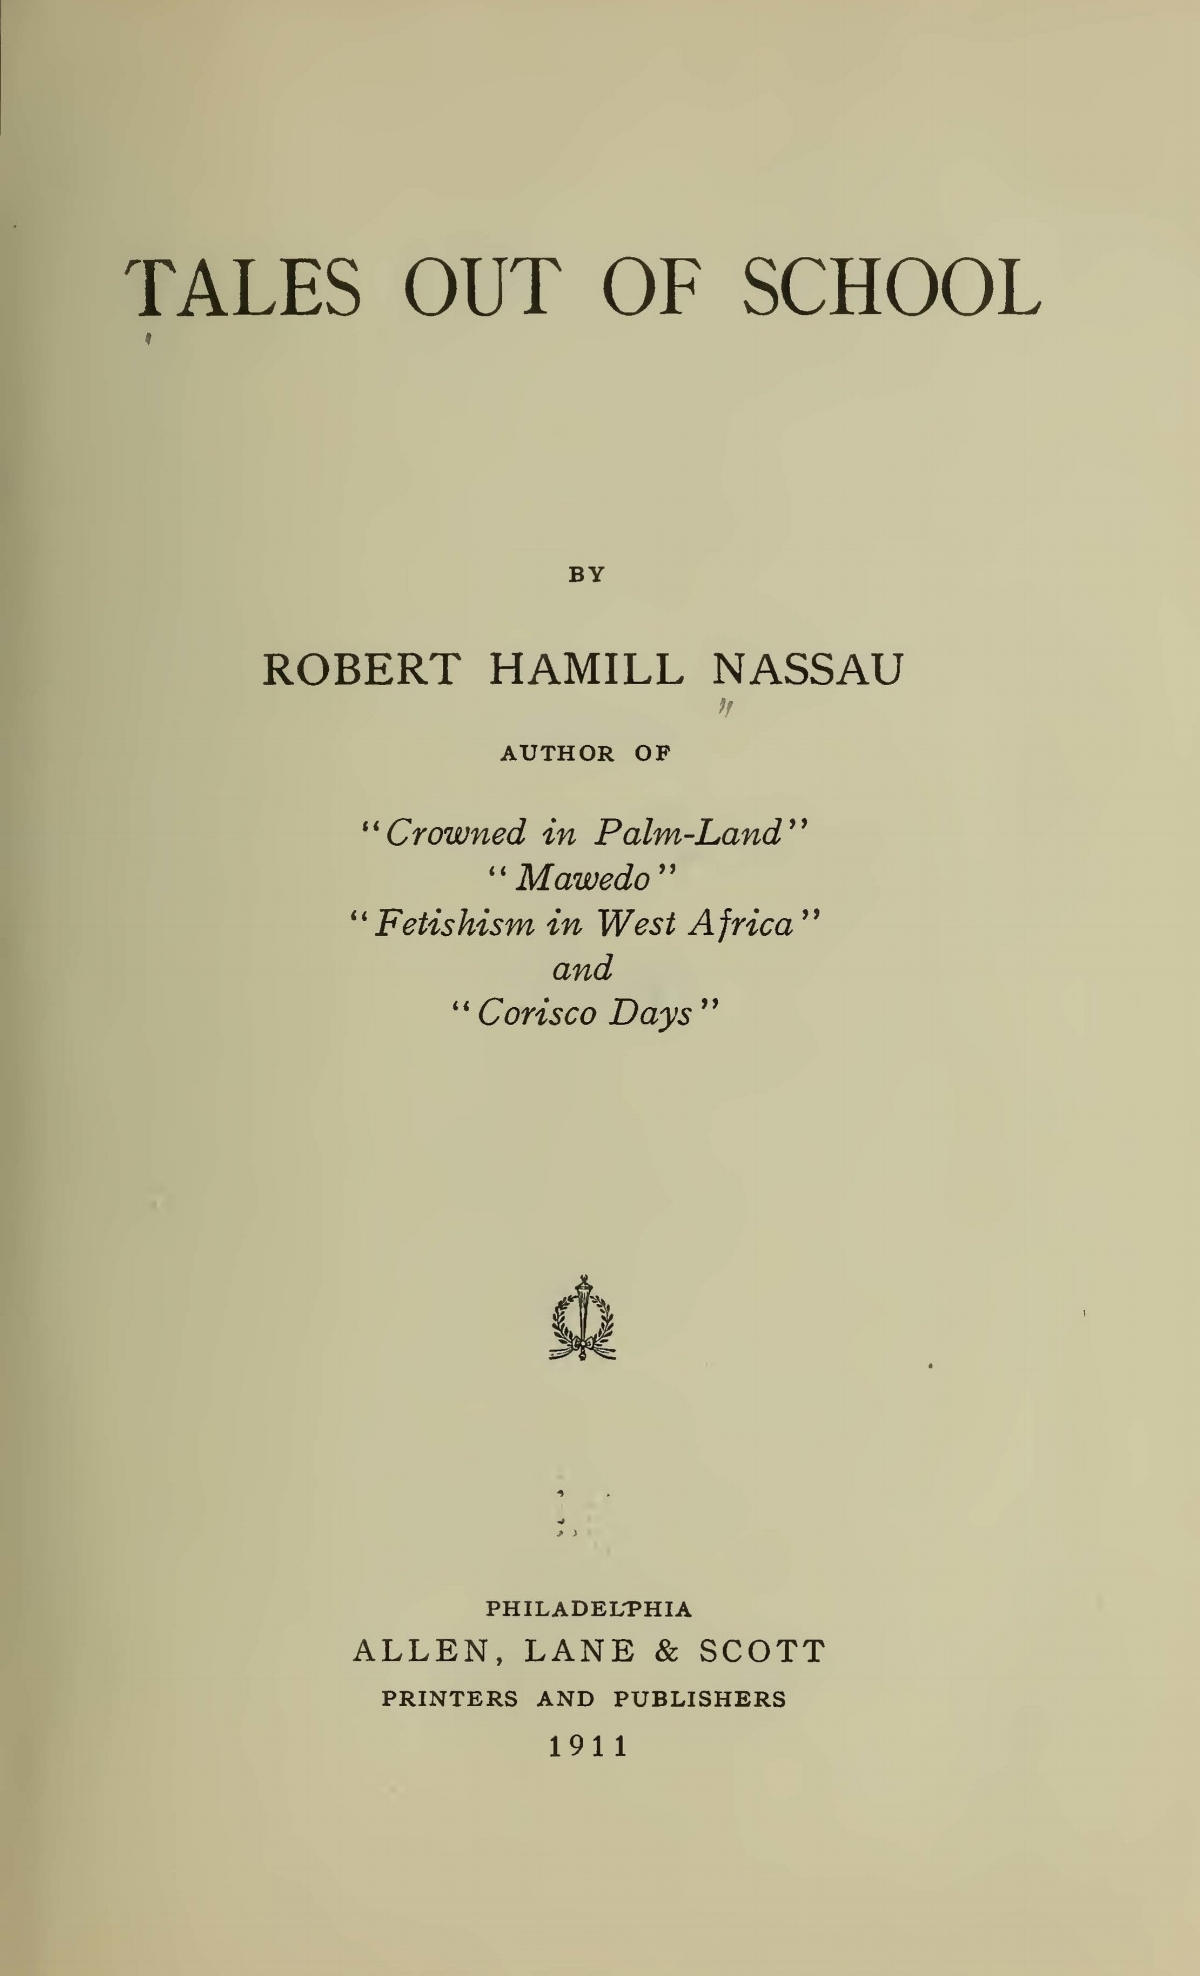 Nassau, Robert Hamill, Tales Out of School Title Page.jpg